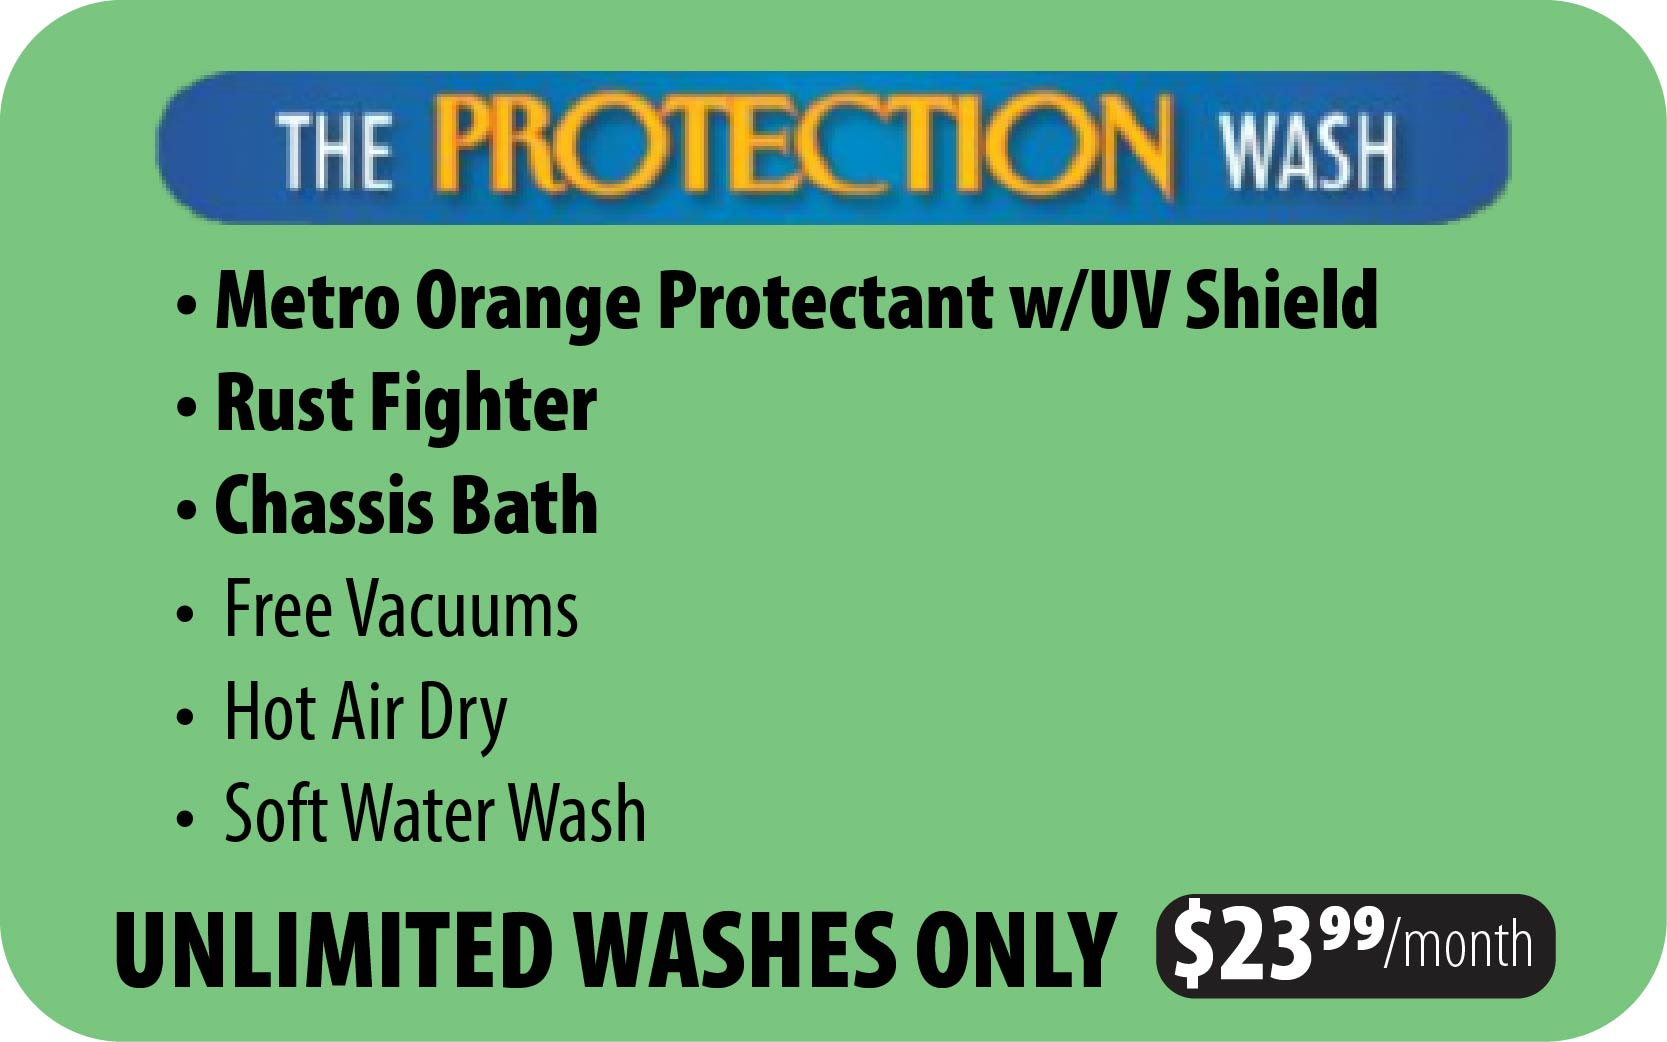 Unlimited Protection Wash Plan